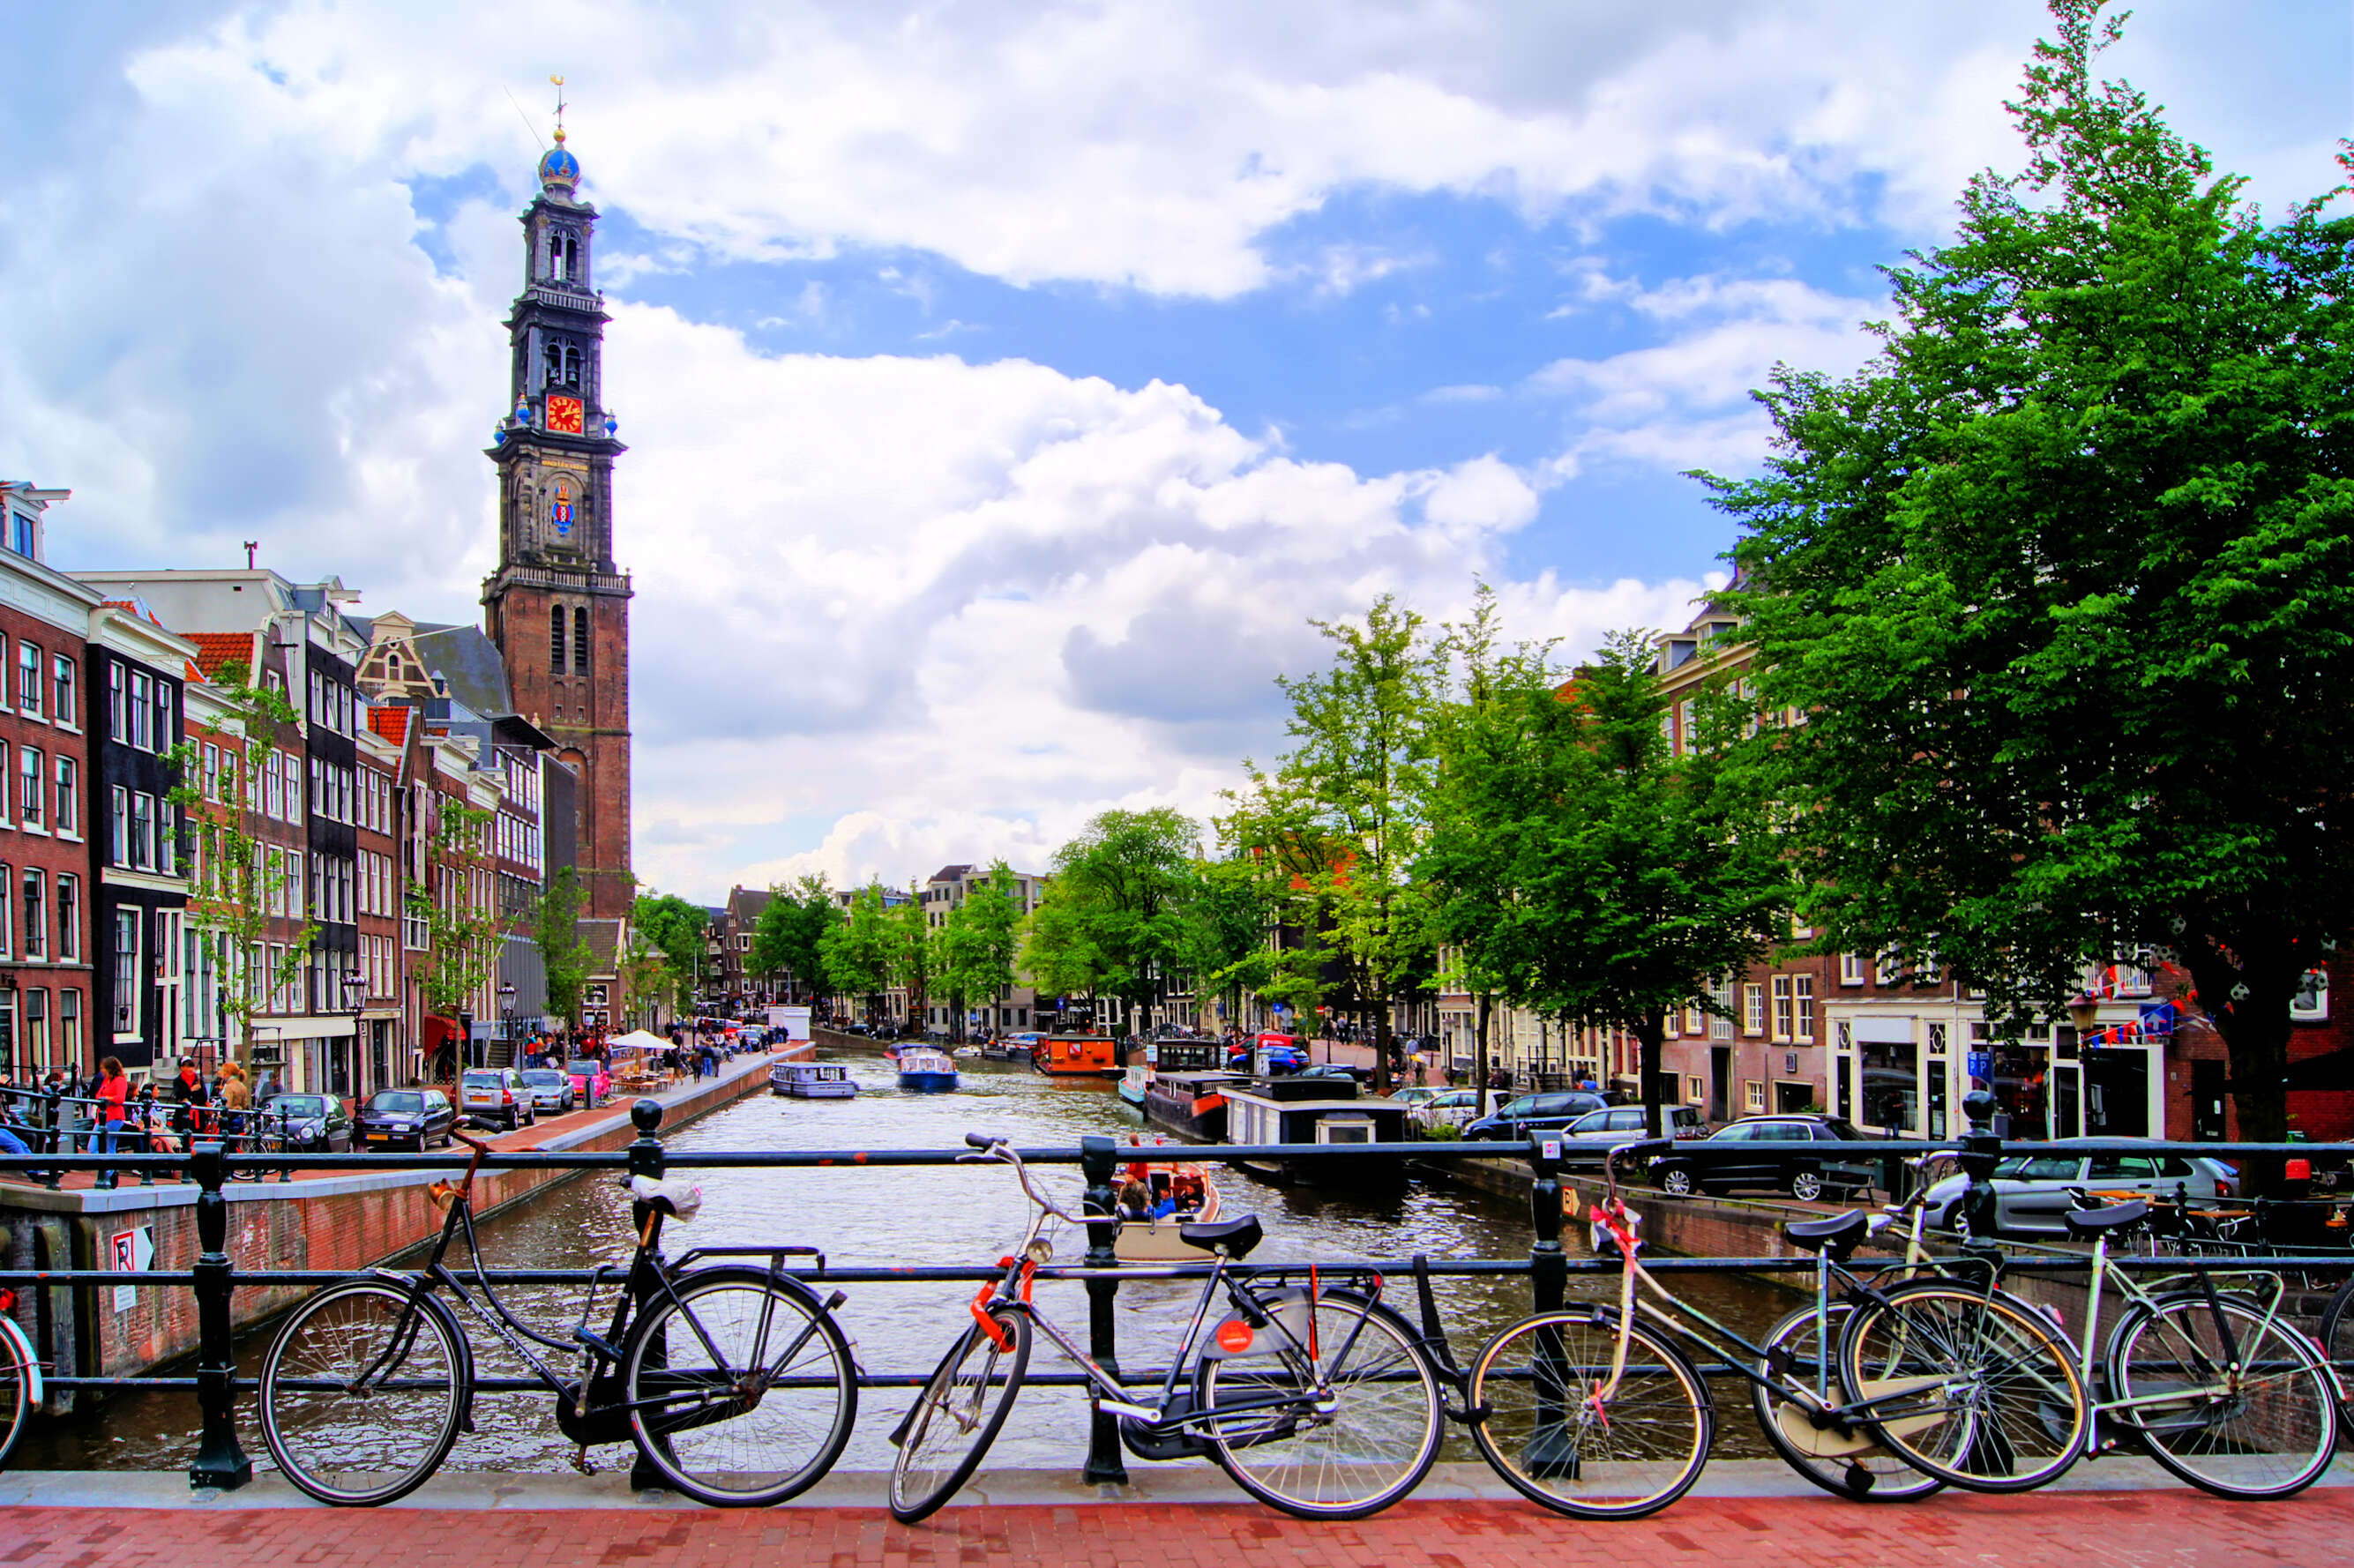 The Convent Amsterdam